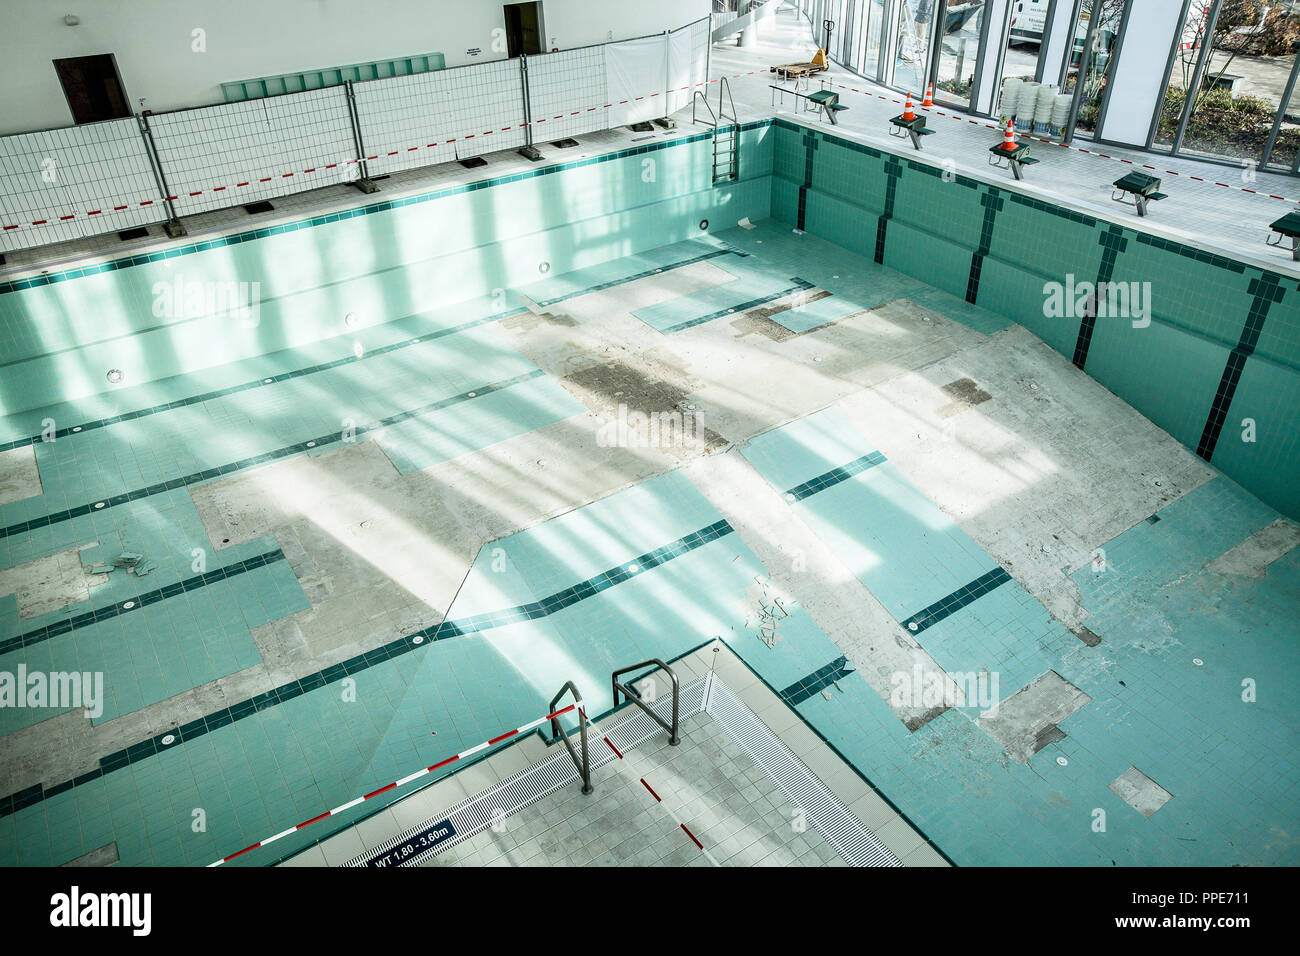 In the renovation-requiring indoor swimming pool in Ismaning, tiles ...